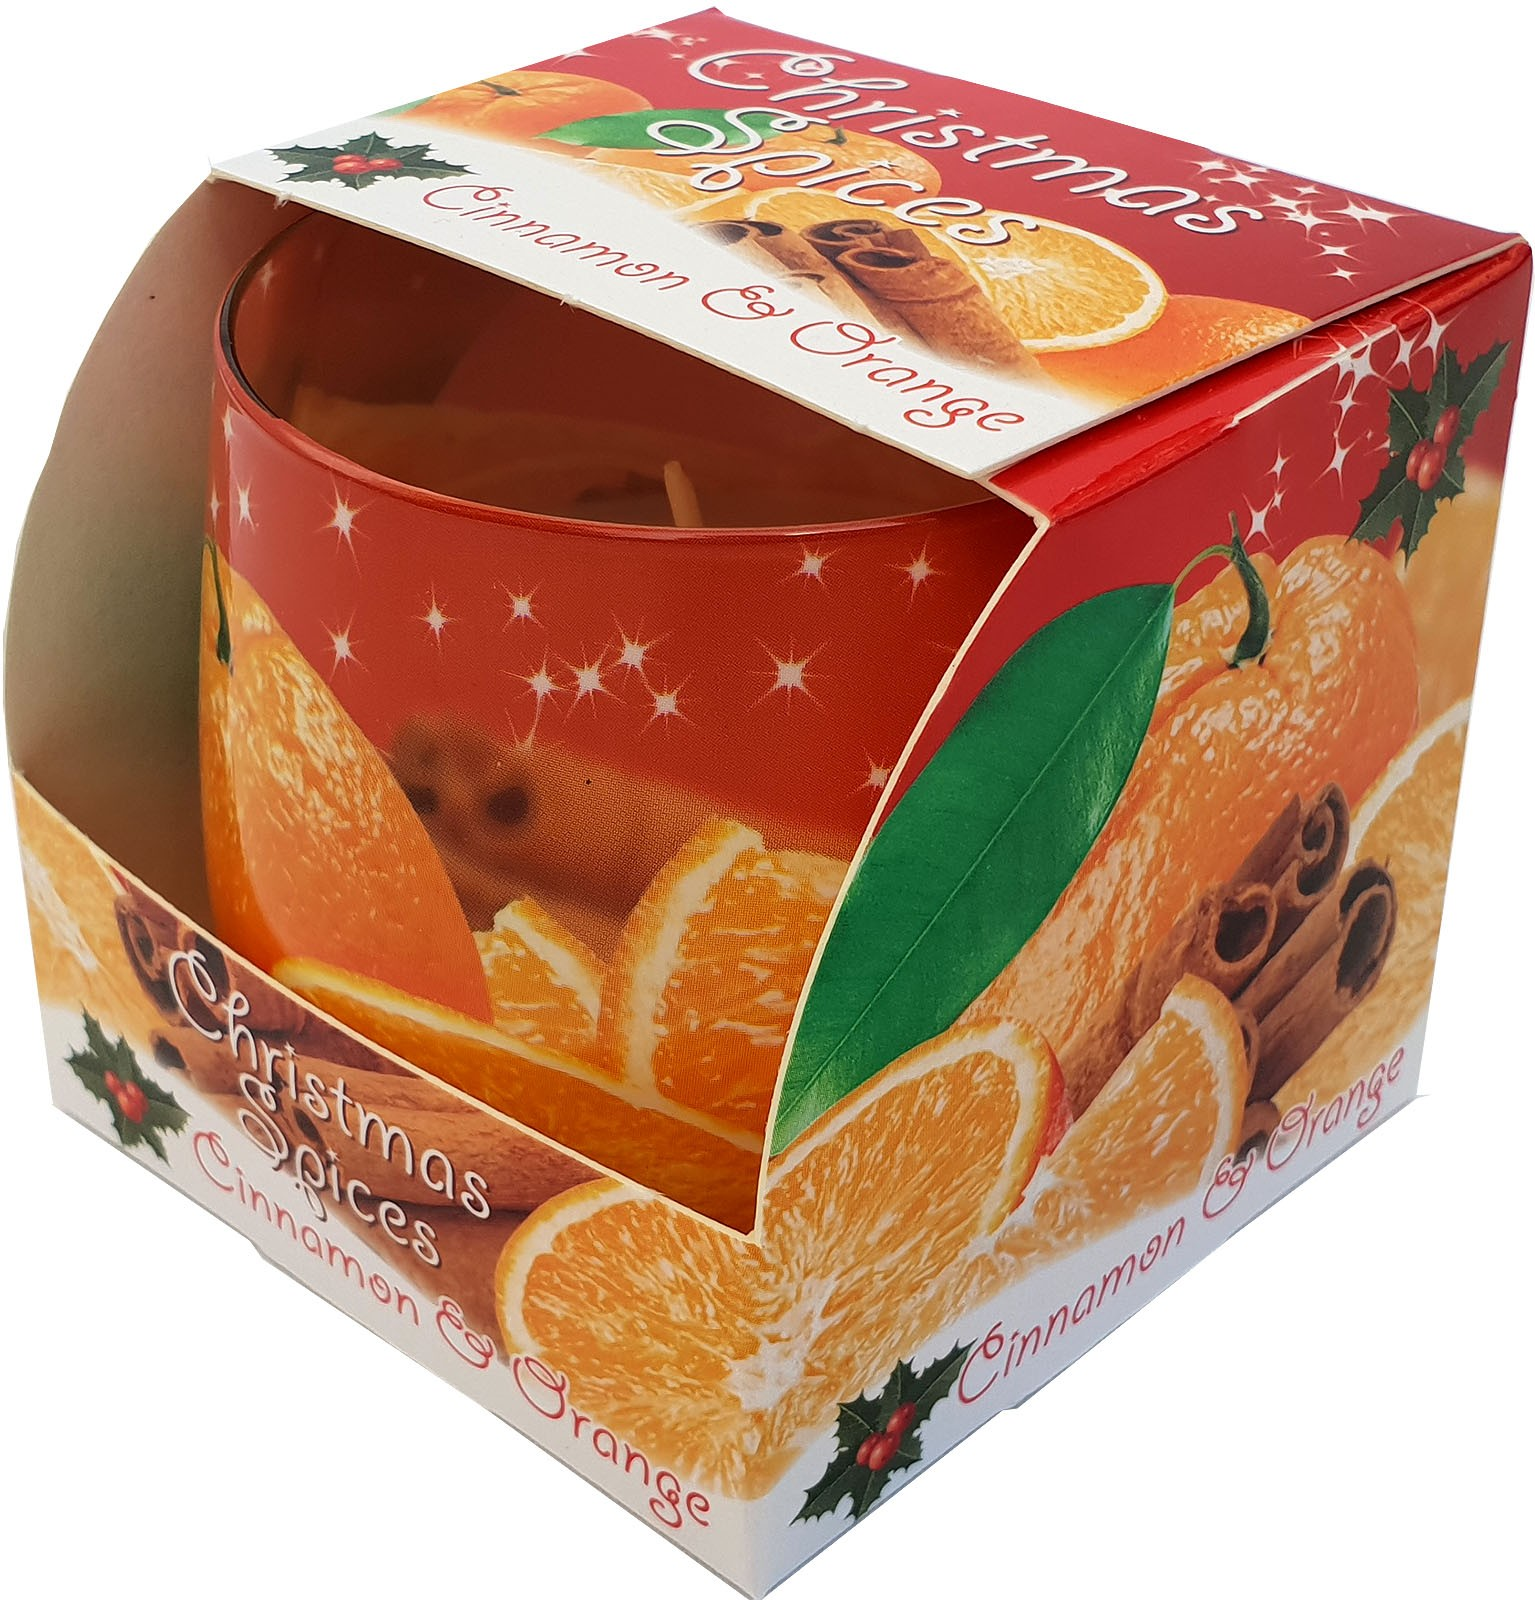 aroma candle Christmas spices - cinnamon/orange, small glass